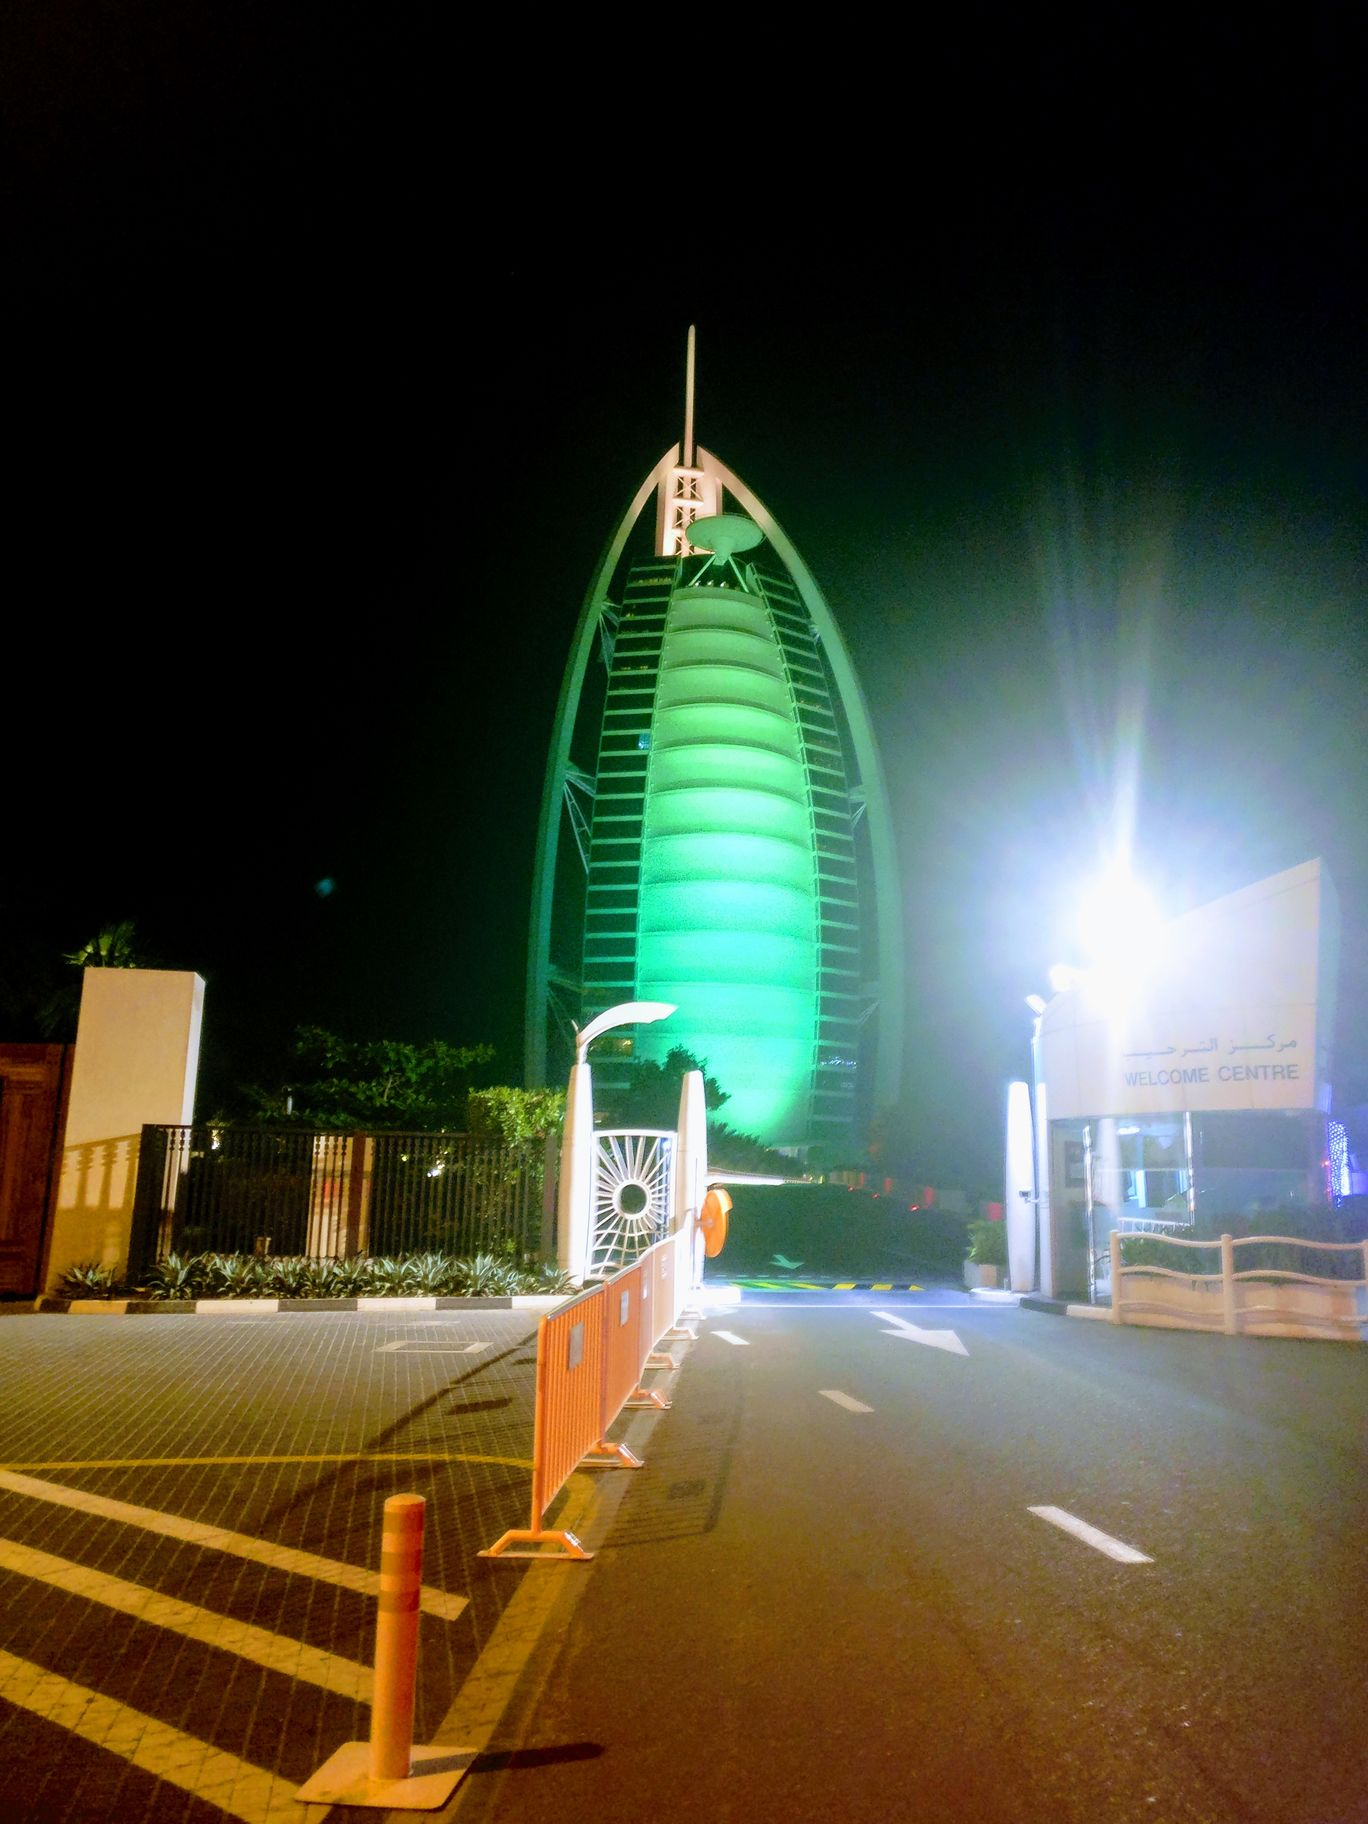 Photo of Burj Al Arab - Jumeirah Street - Dubai - United Arab Emirates By Lakshay Narula